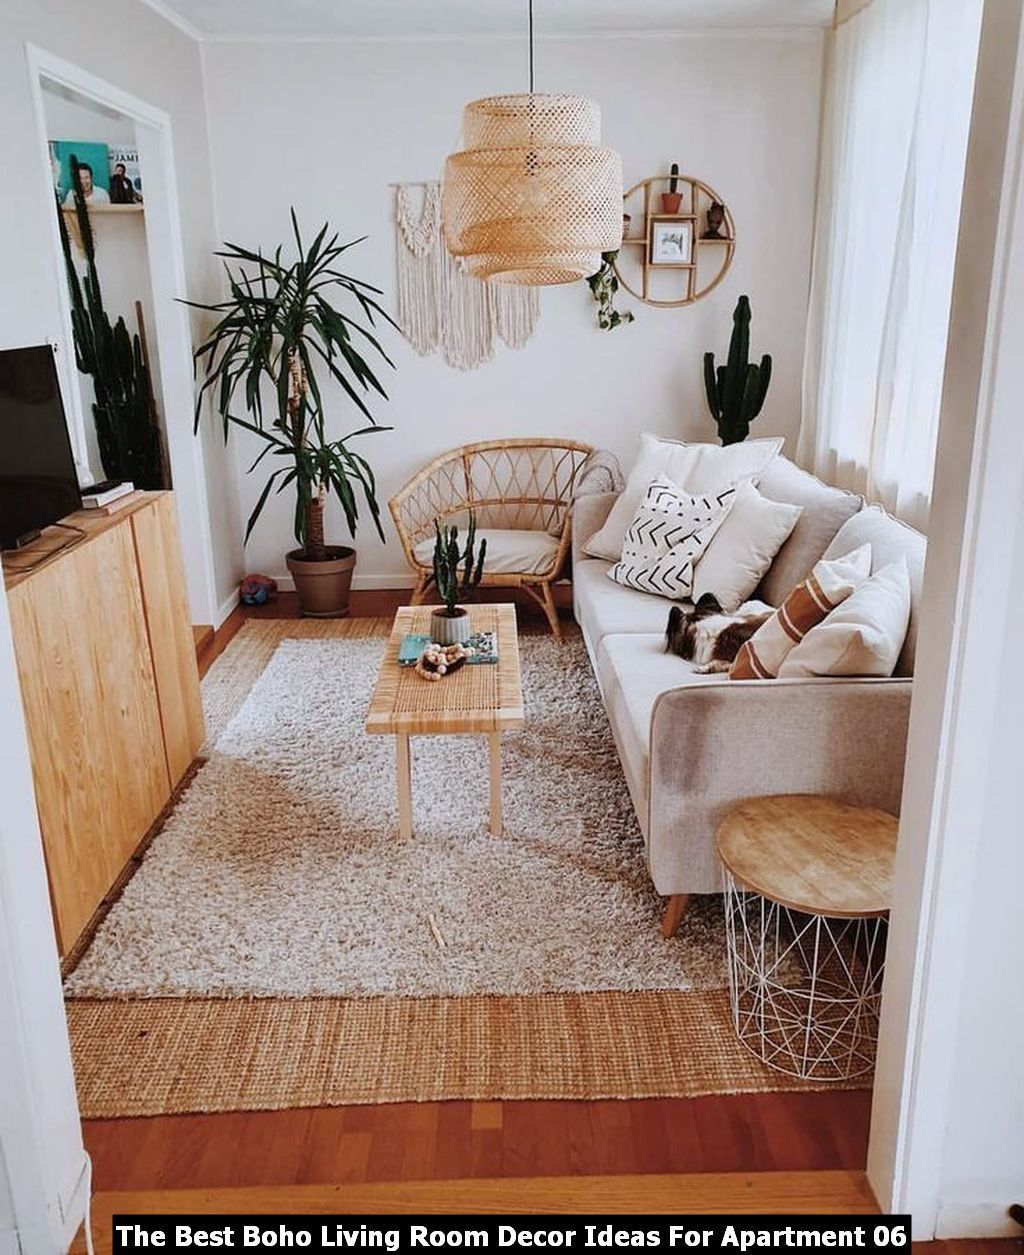 the best boho living room decor ideas for apartment in